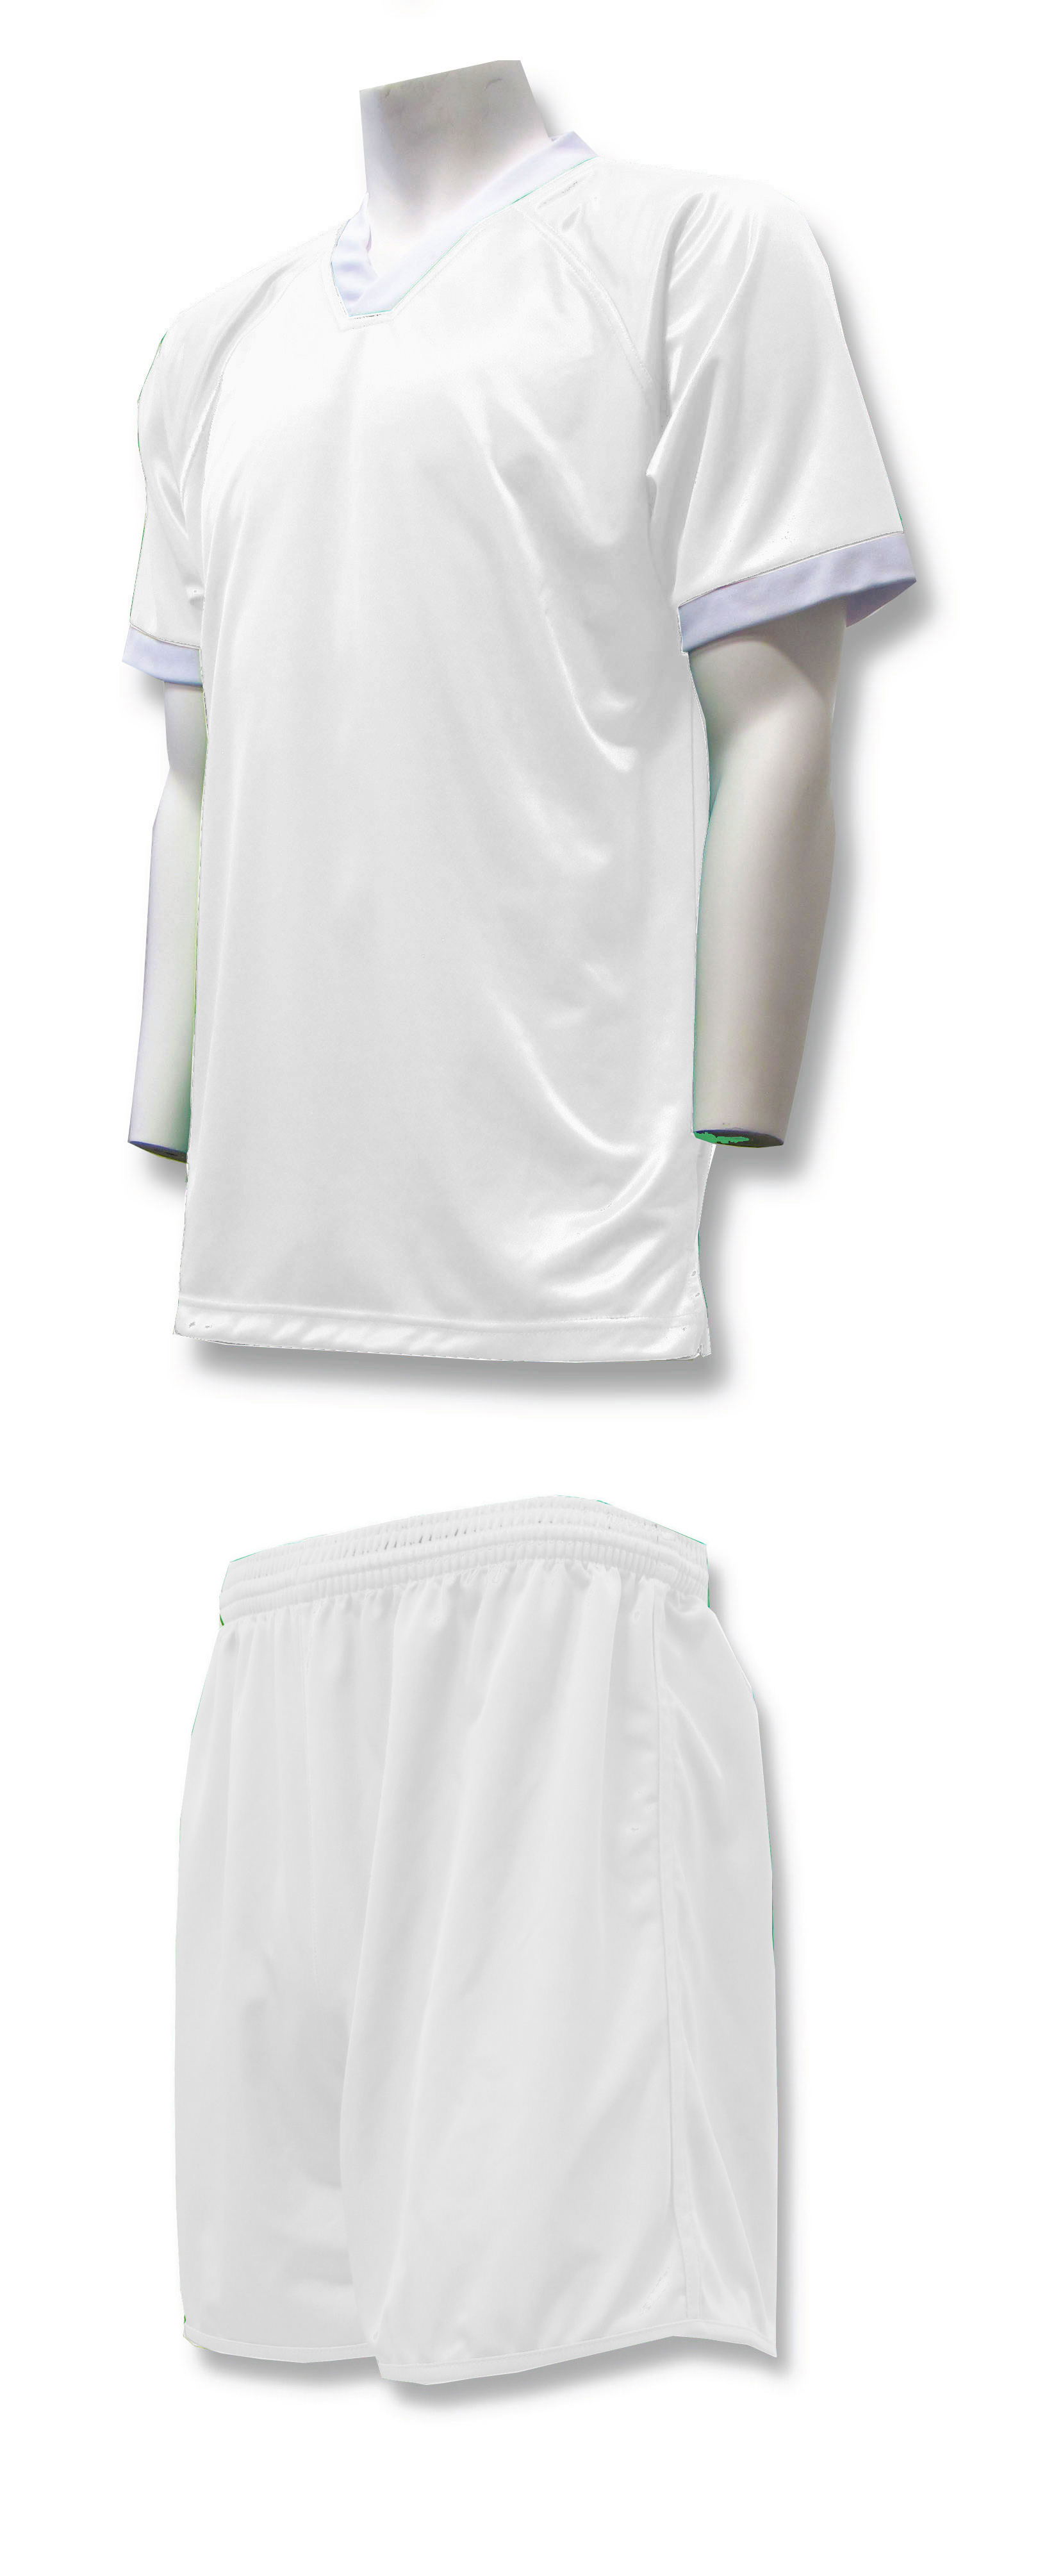 Forza soccer uniform kit in white by Code Four Athletics